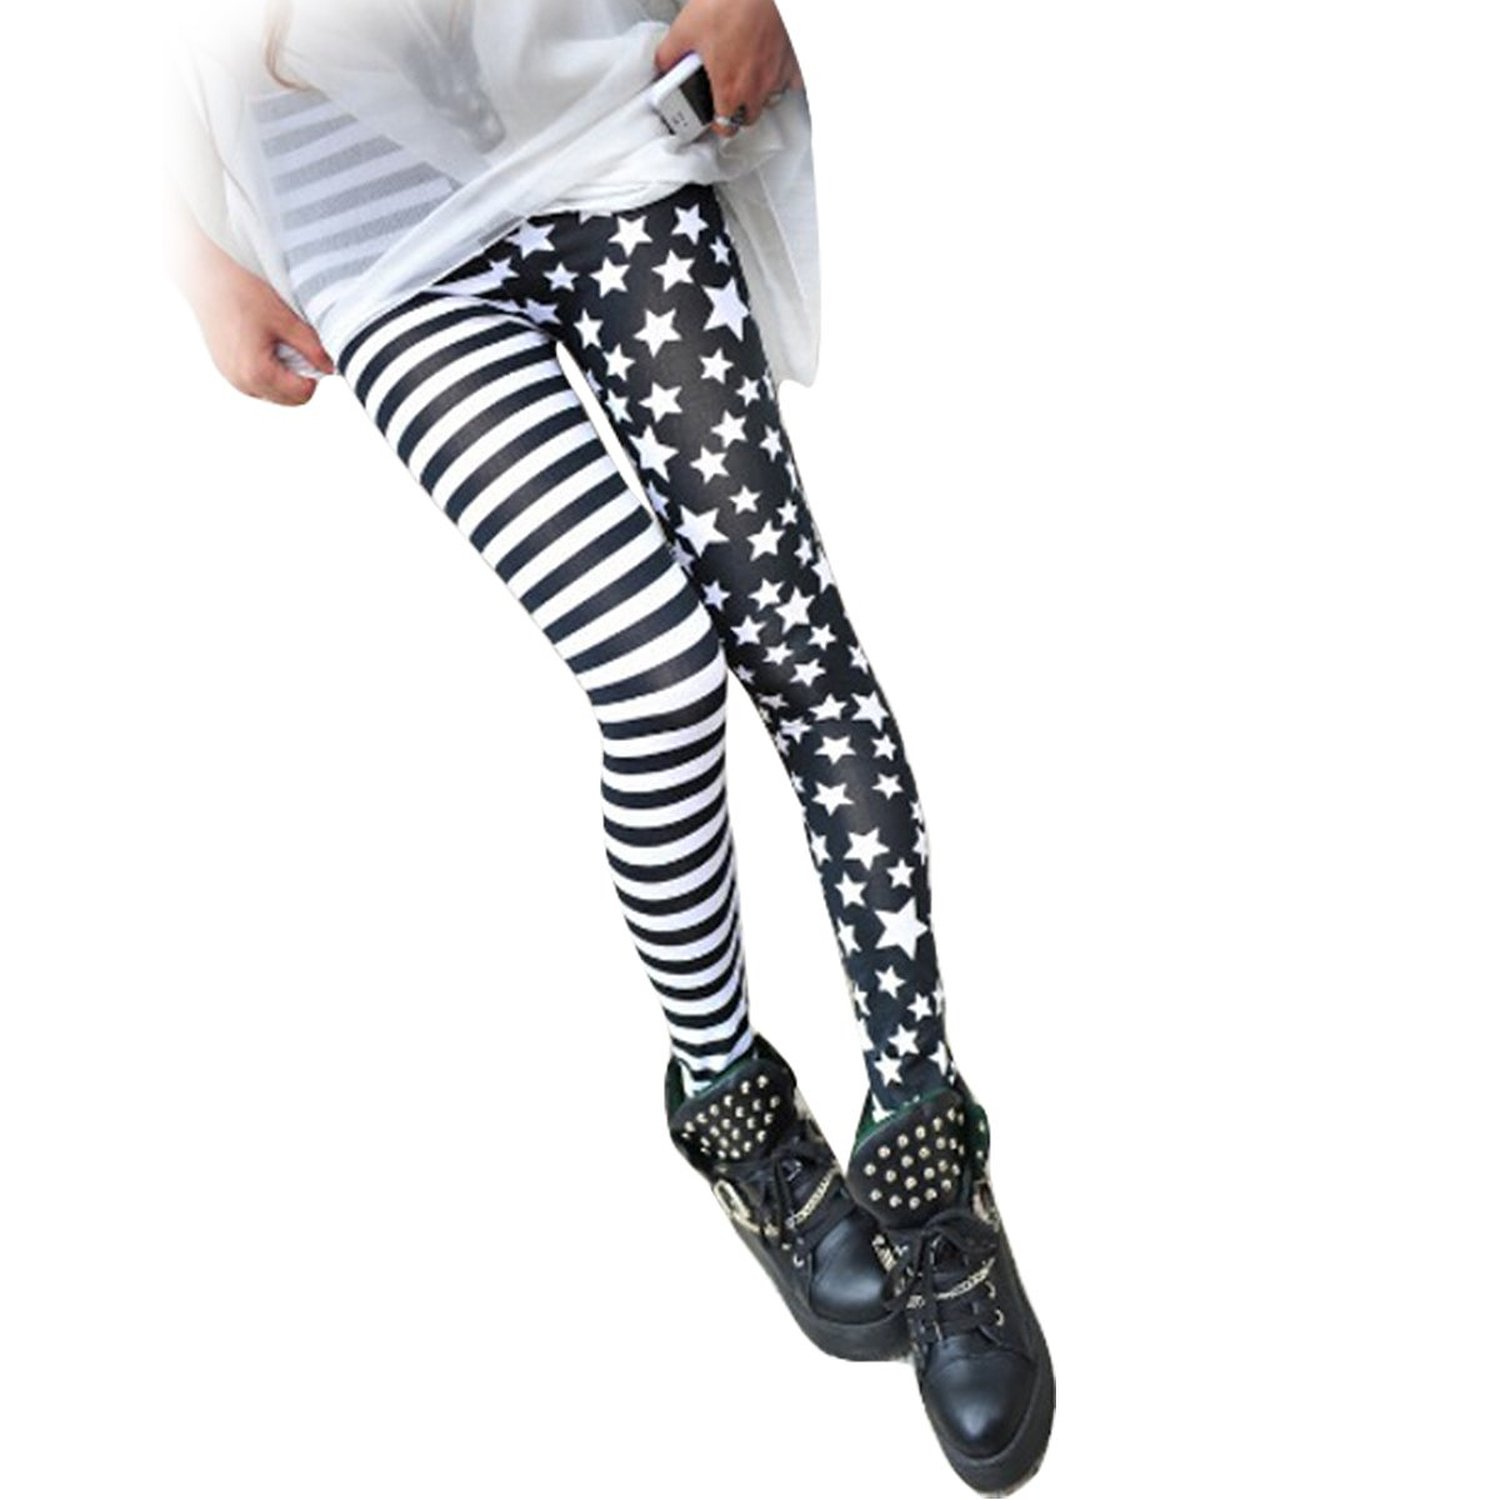 WHATWEARS Women Black And White Striped Star Stitching Jegging Leggings at Amazon Women's Clothing store: